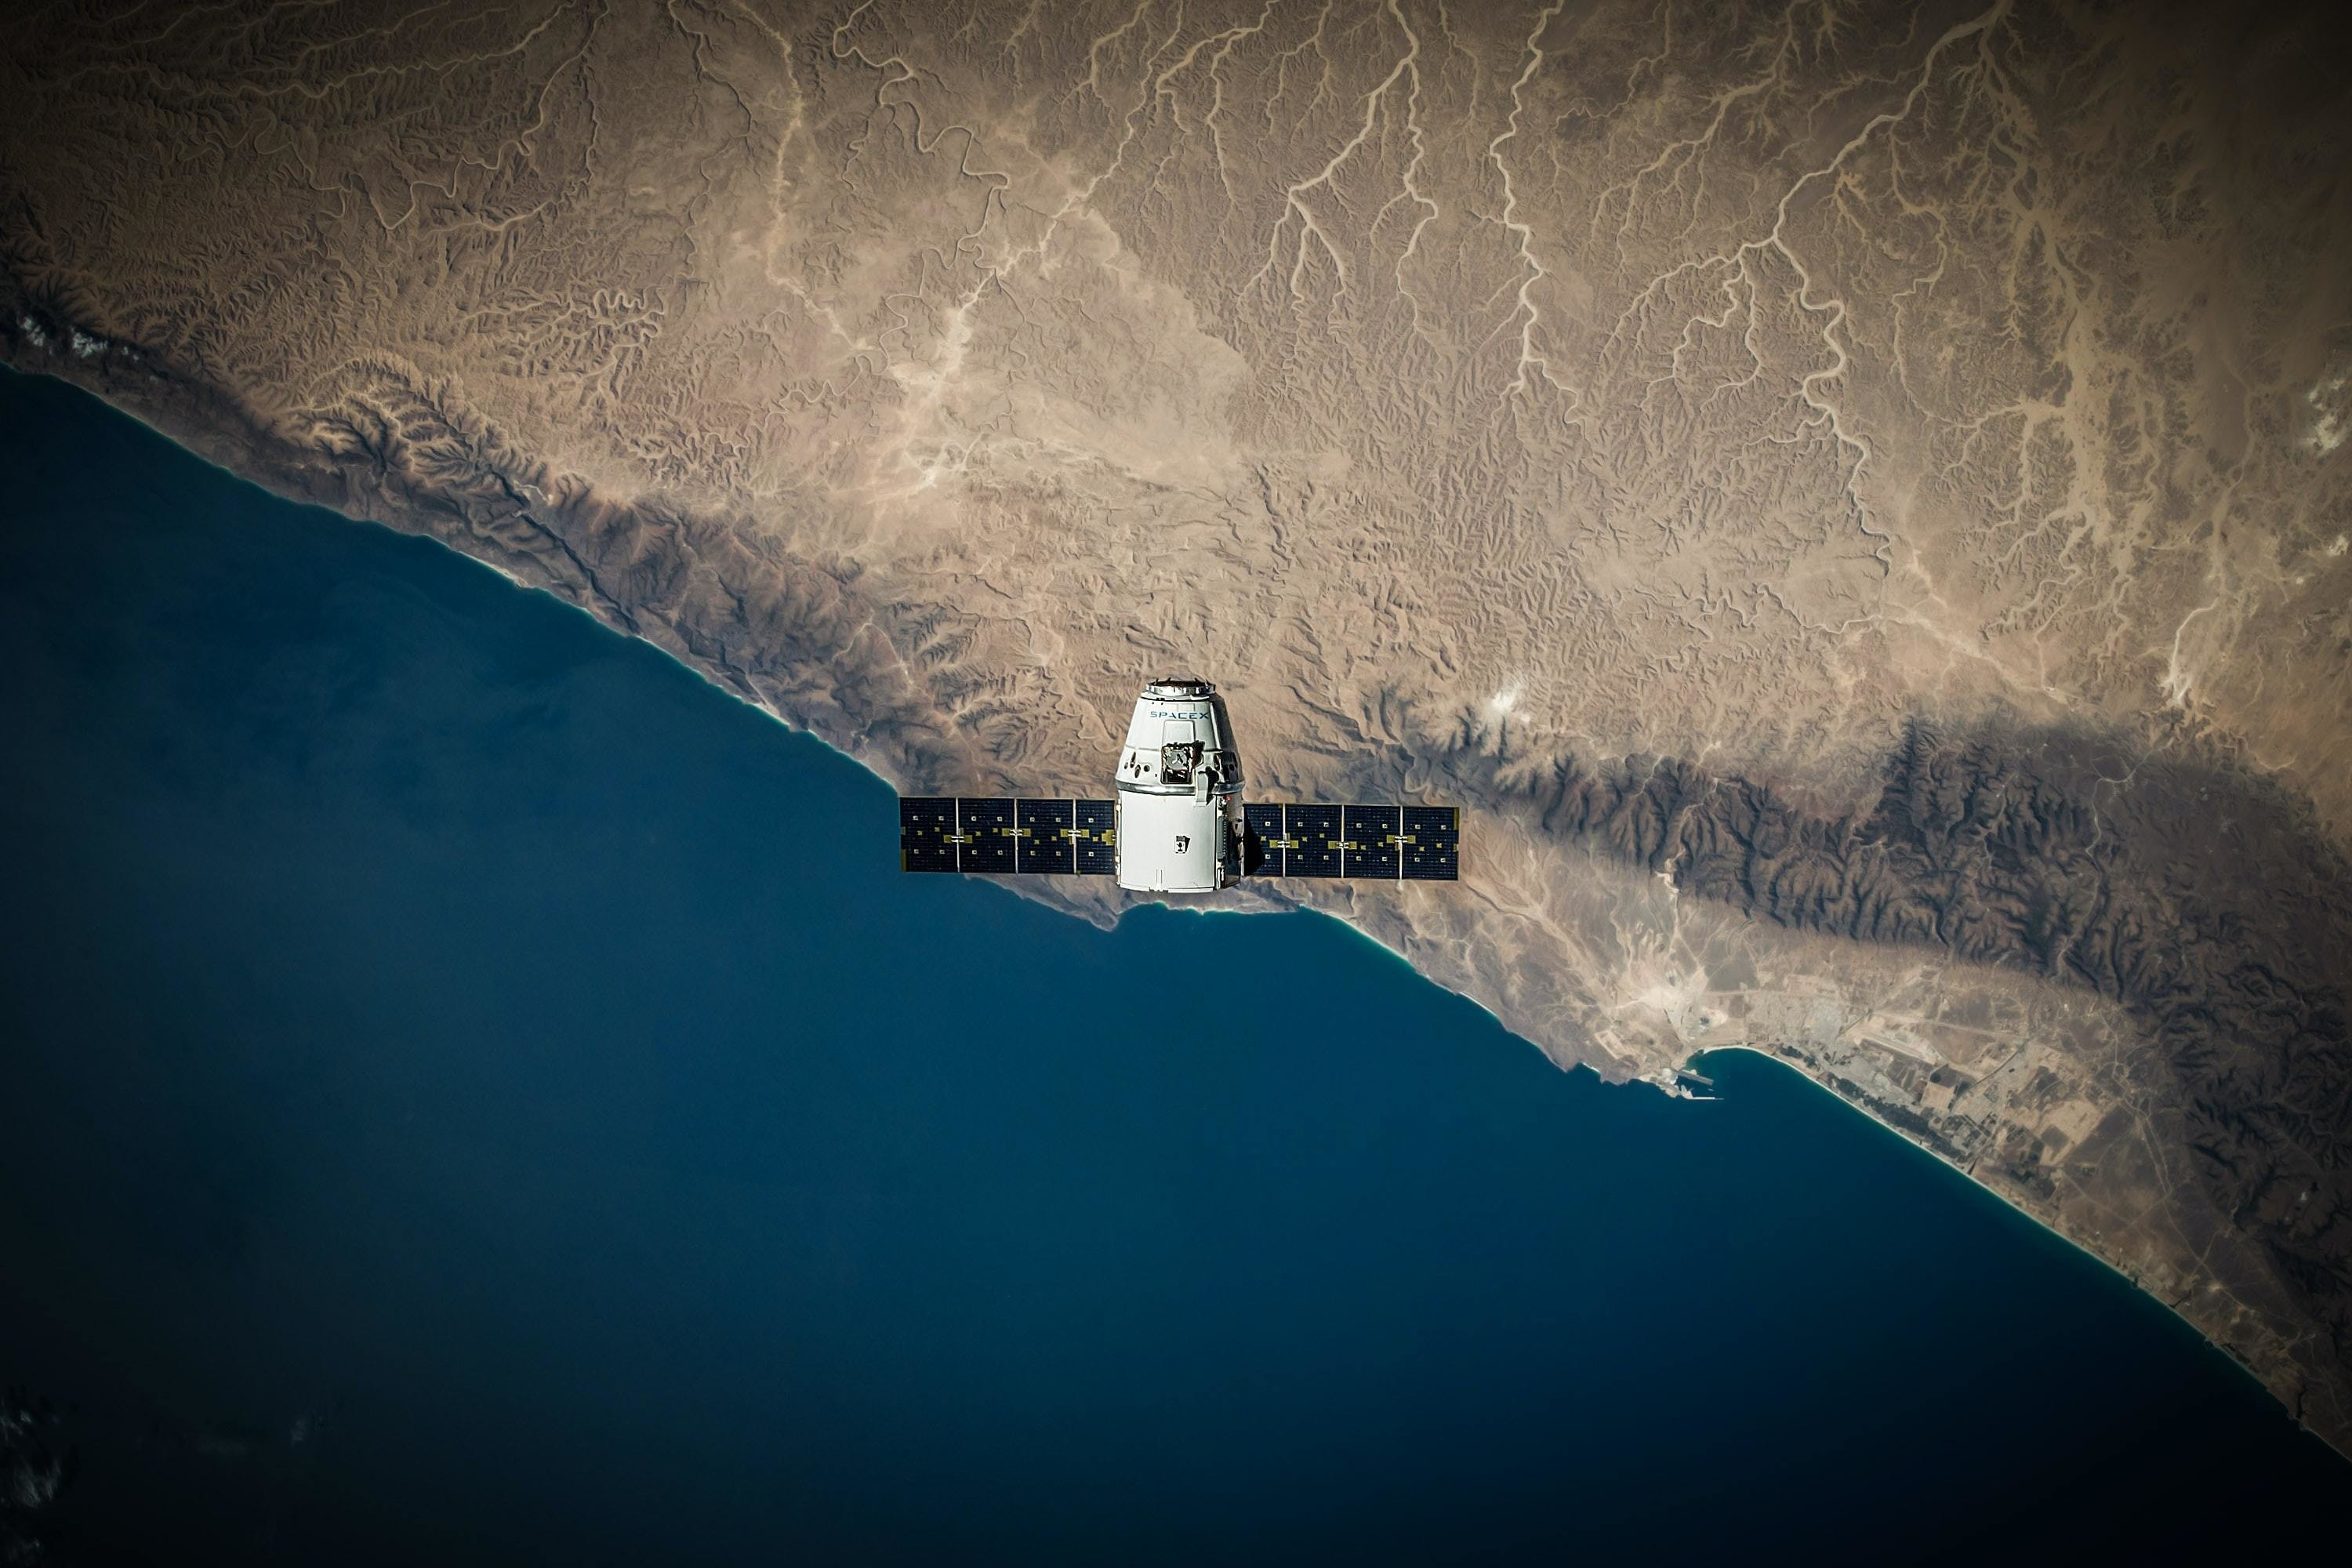 machine learning can be used to fill in data 'gaps' from satellites, like this satellite here